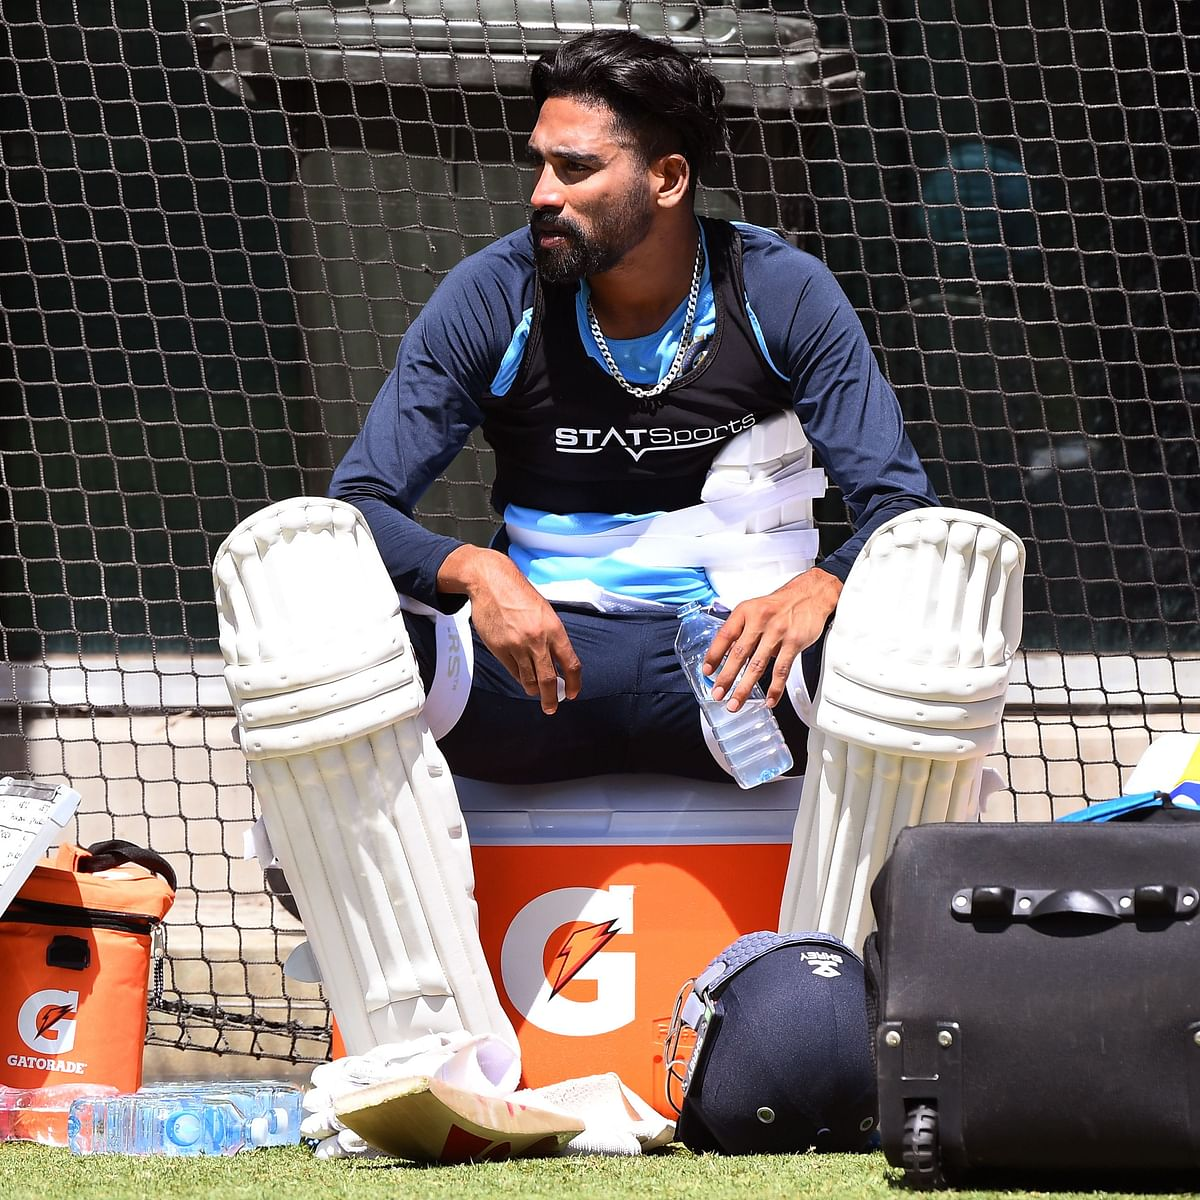 Mohammed Siraj, who stayed back in Australia after his father's death, all set to make Test debut at MCG